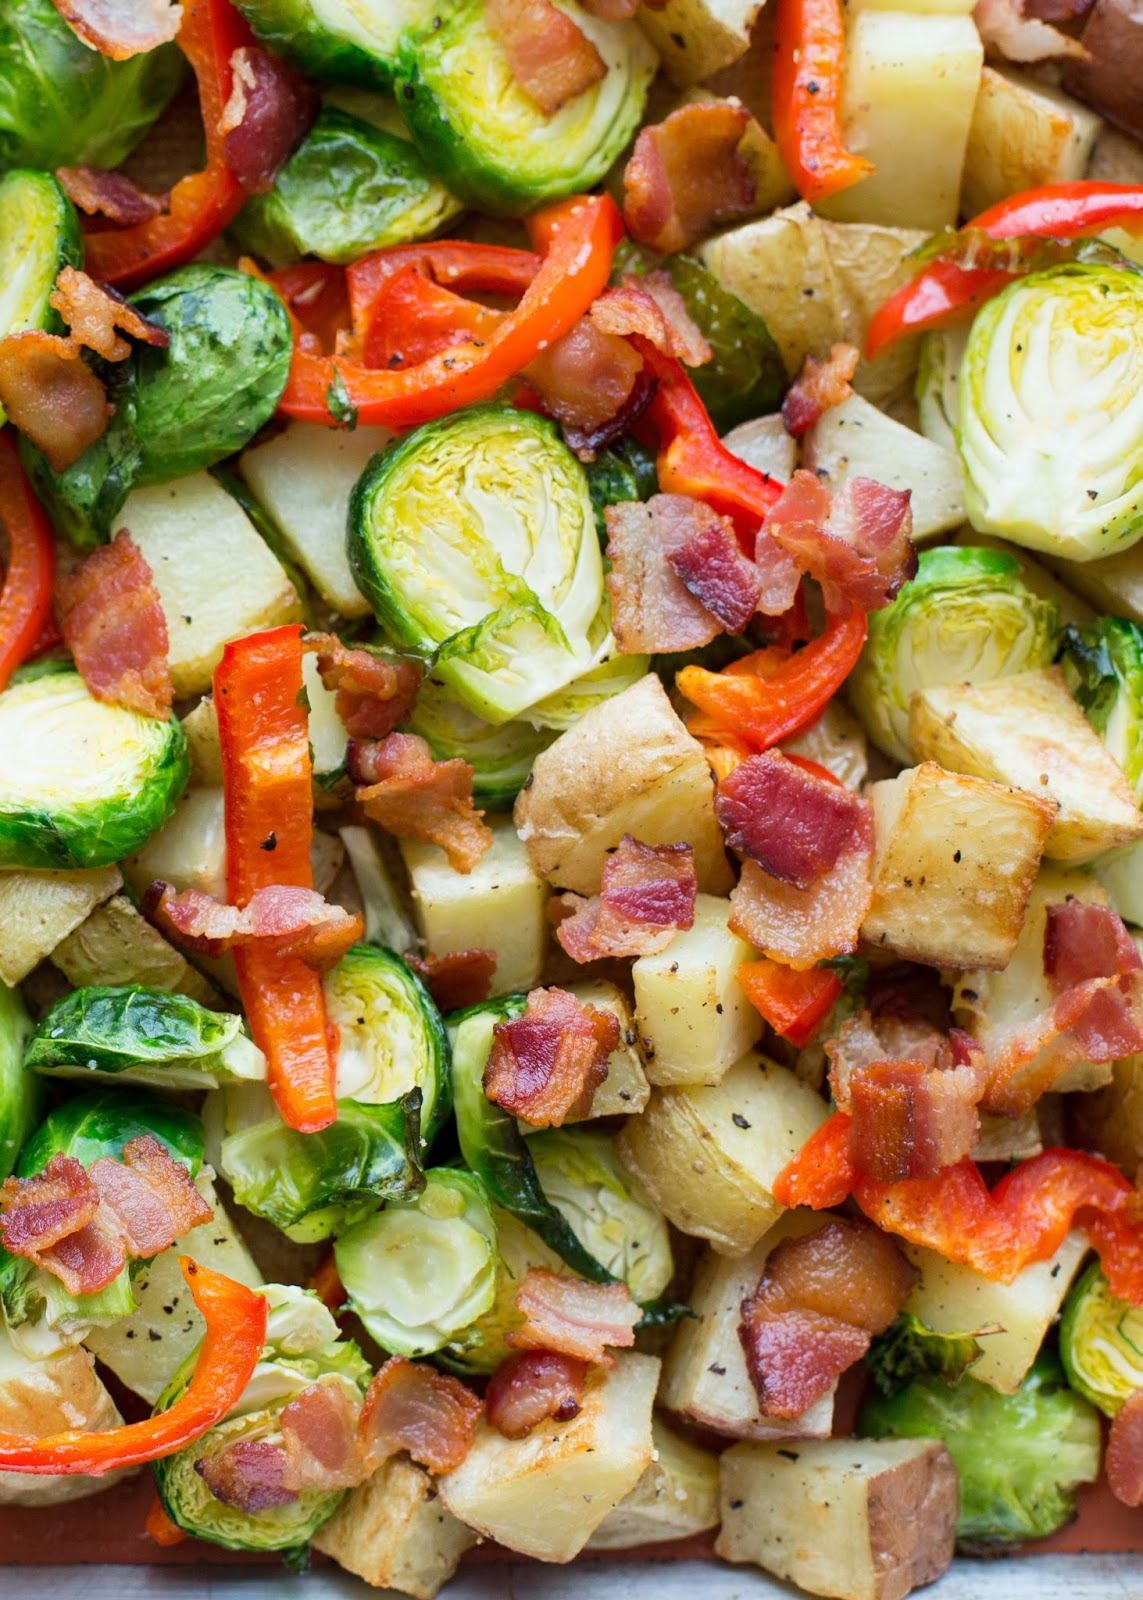 vinaigrette brussels sprouts with bacon brussels sprouts with bacon ...